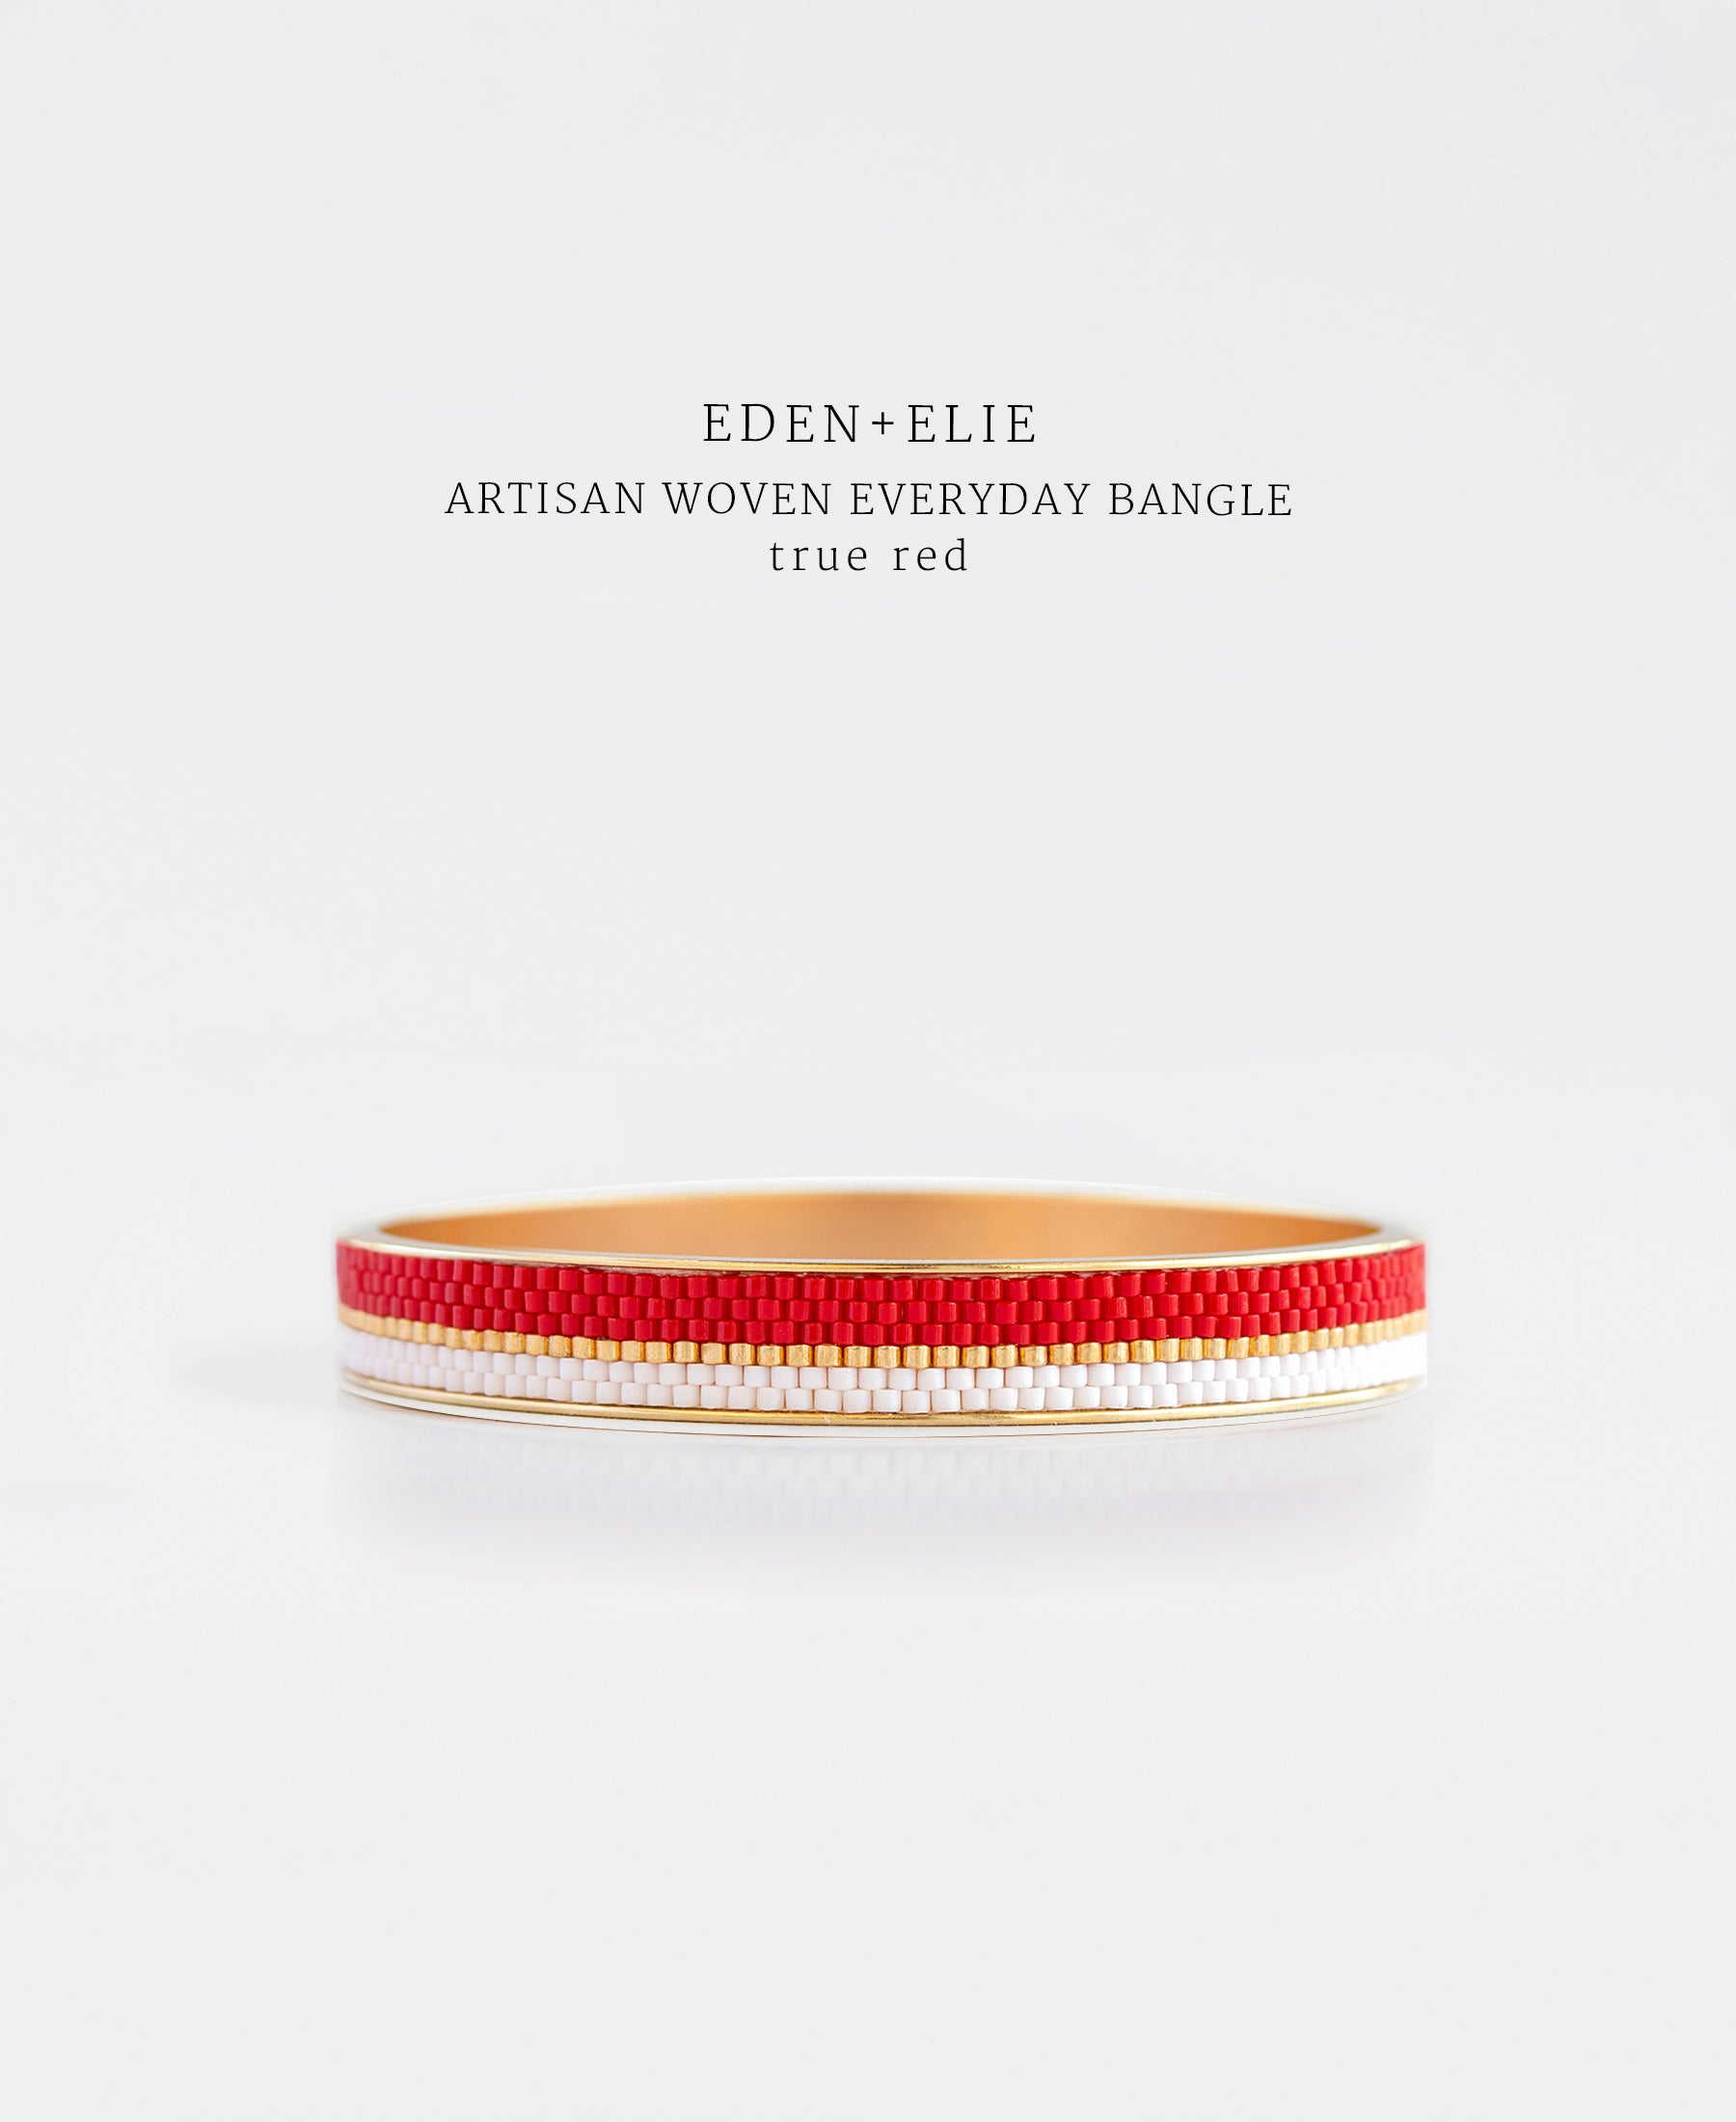 EDEN + ELIE Everyday gold narrow bangle - true red